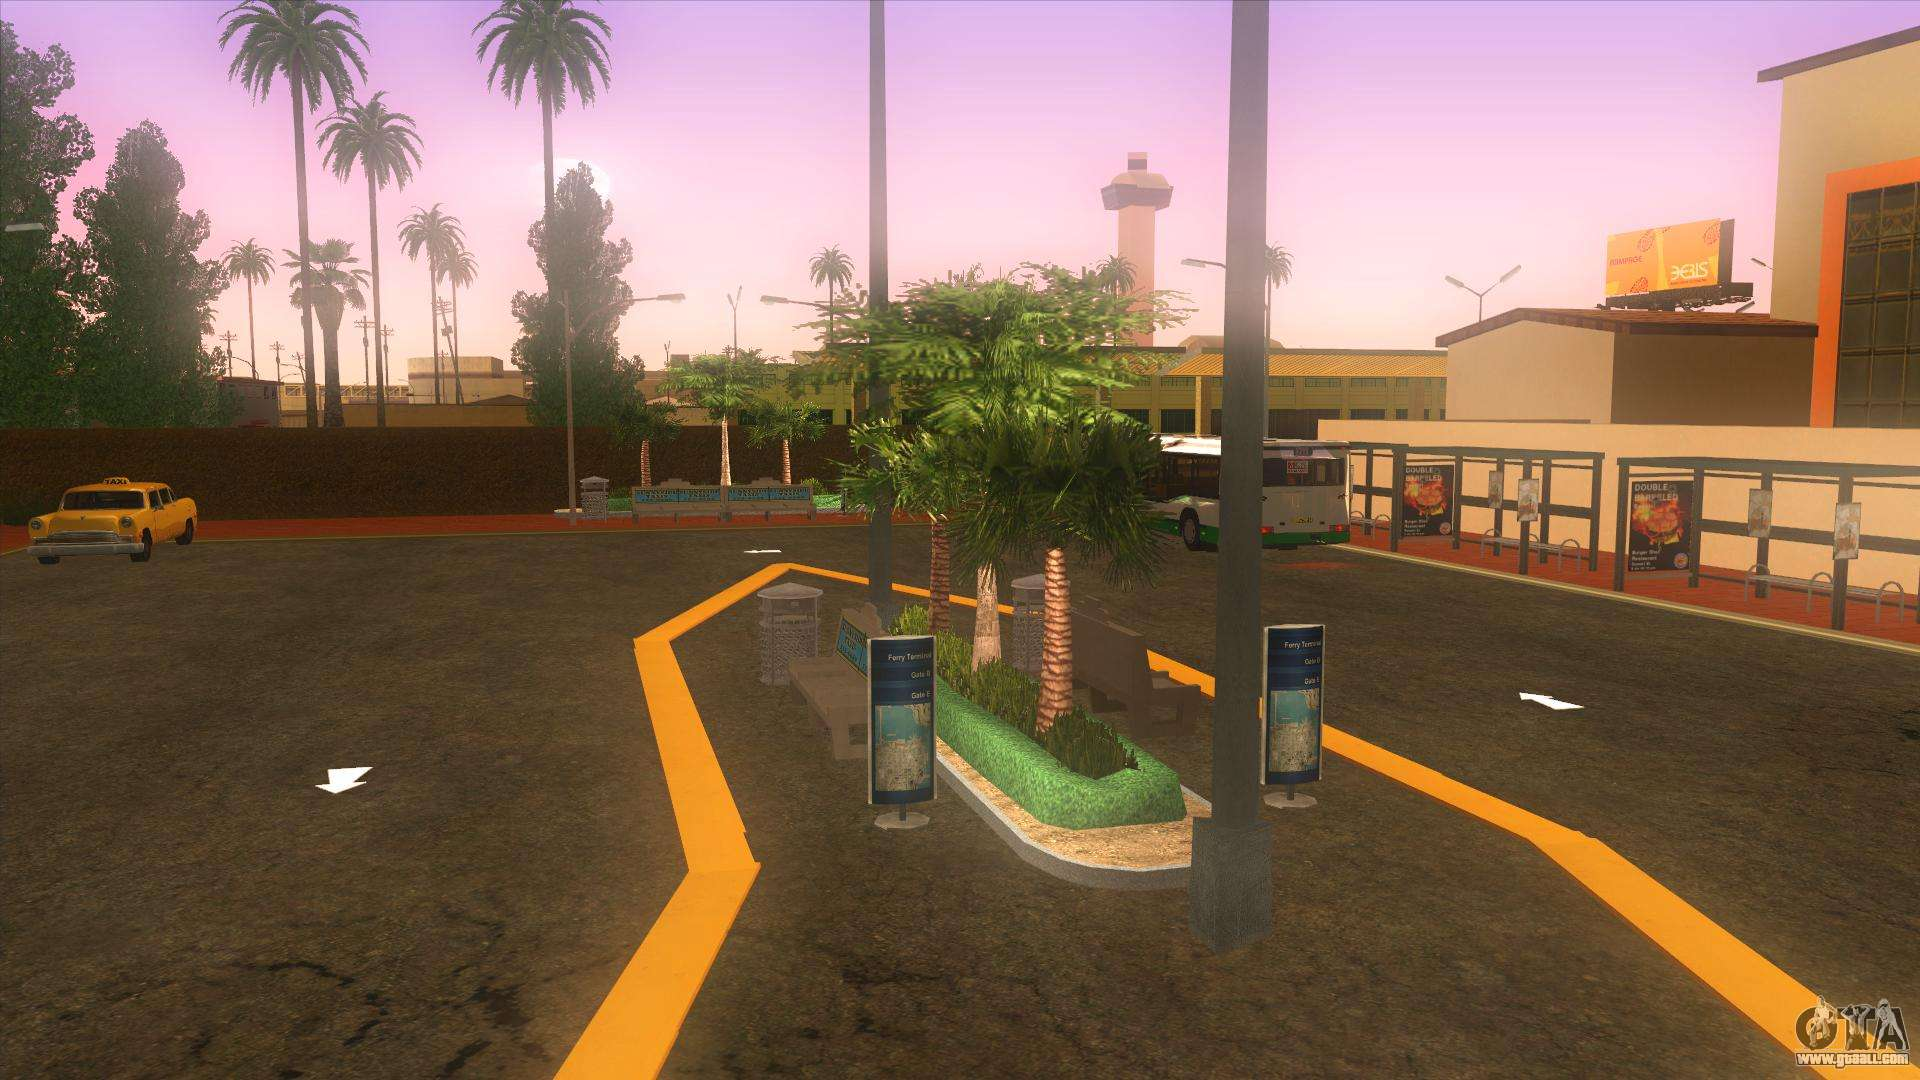 san andreas cheat codes with 36668 Bus Station Los Santos on 78388 Lspd New Garage also Watch further 27979 Road Signs V12 likewise 36668 Bus Station Los Santos as well 58348.